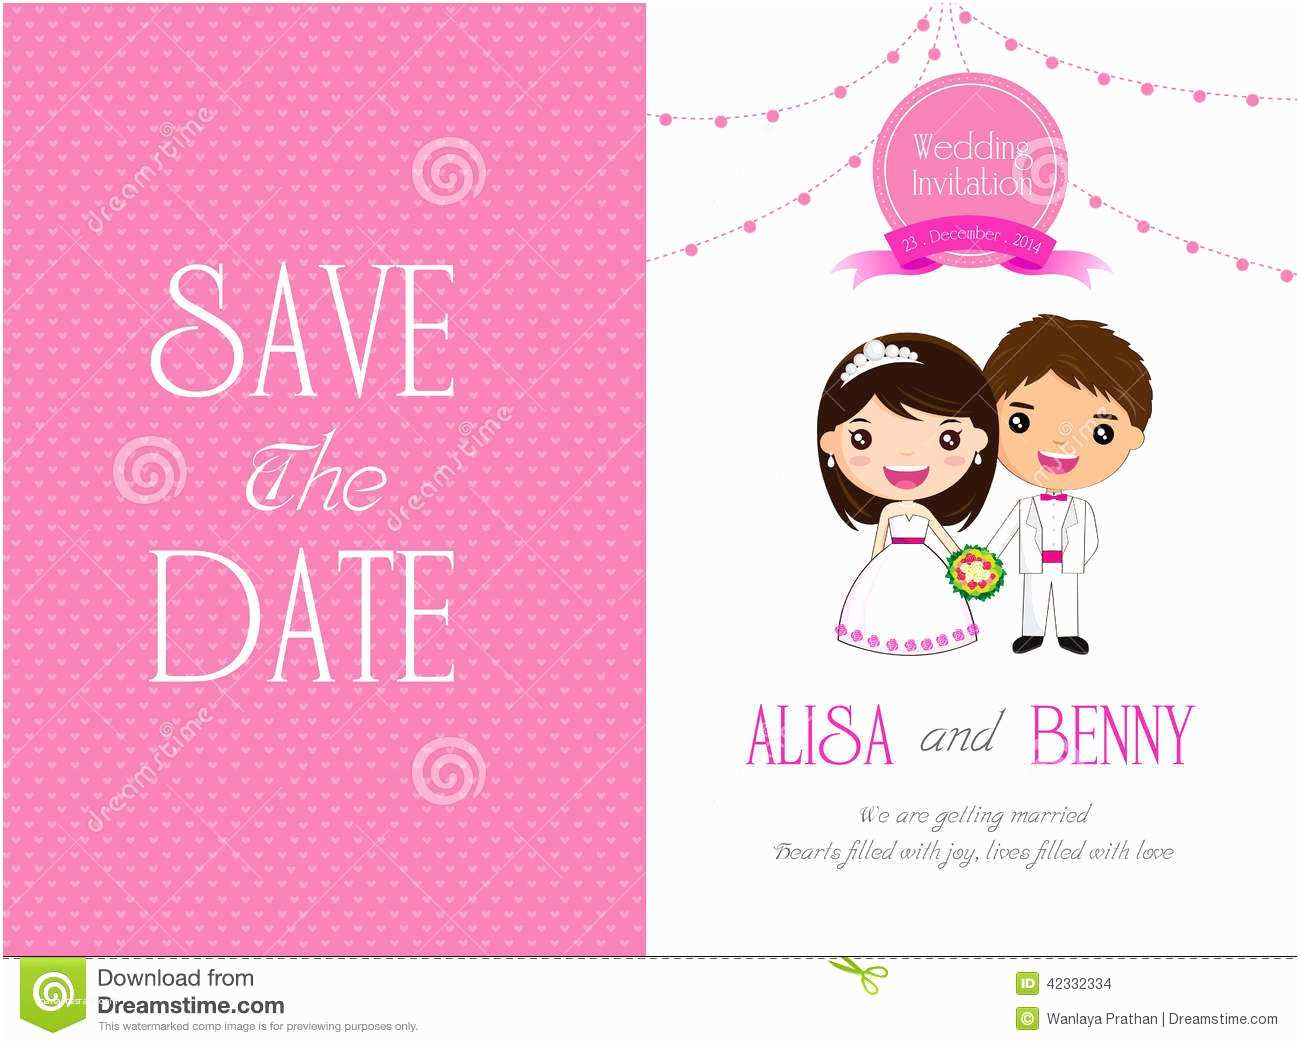 Cartoon Wedding Invitations Online Invitation Archives Page 4 Of 10 Decorating Party